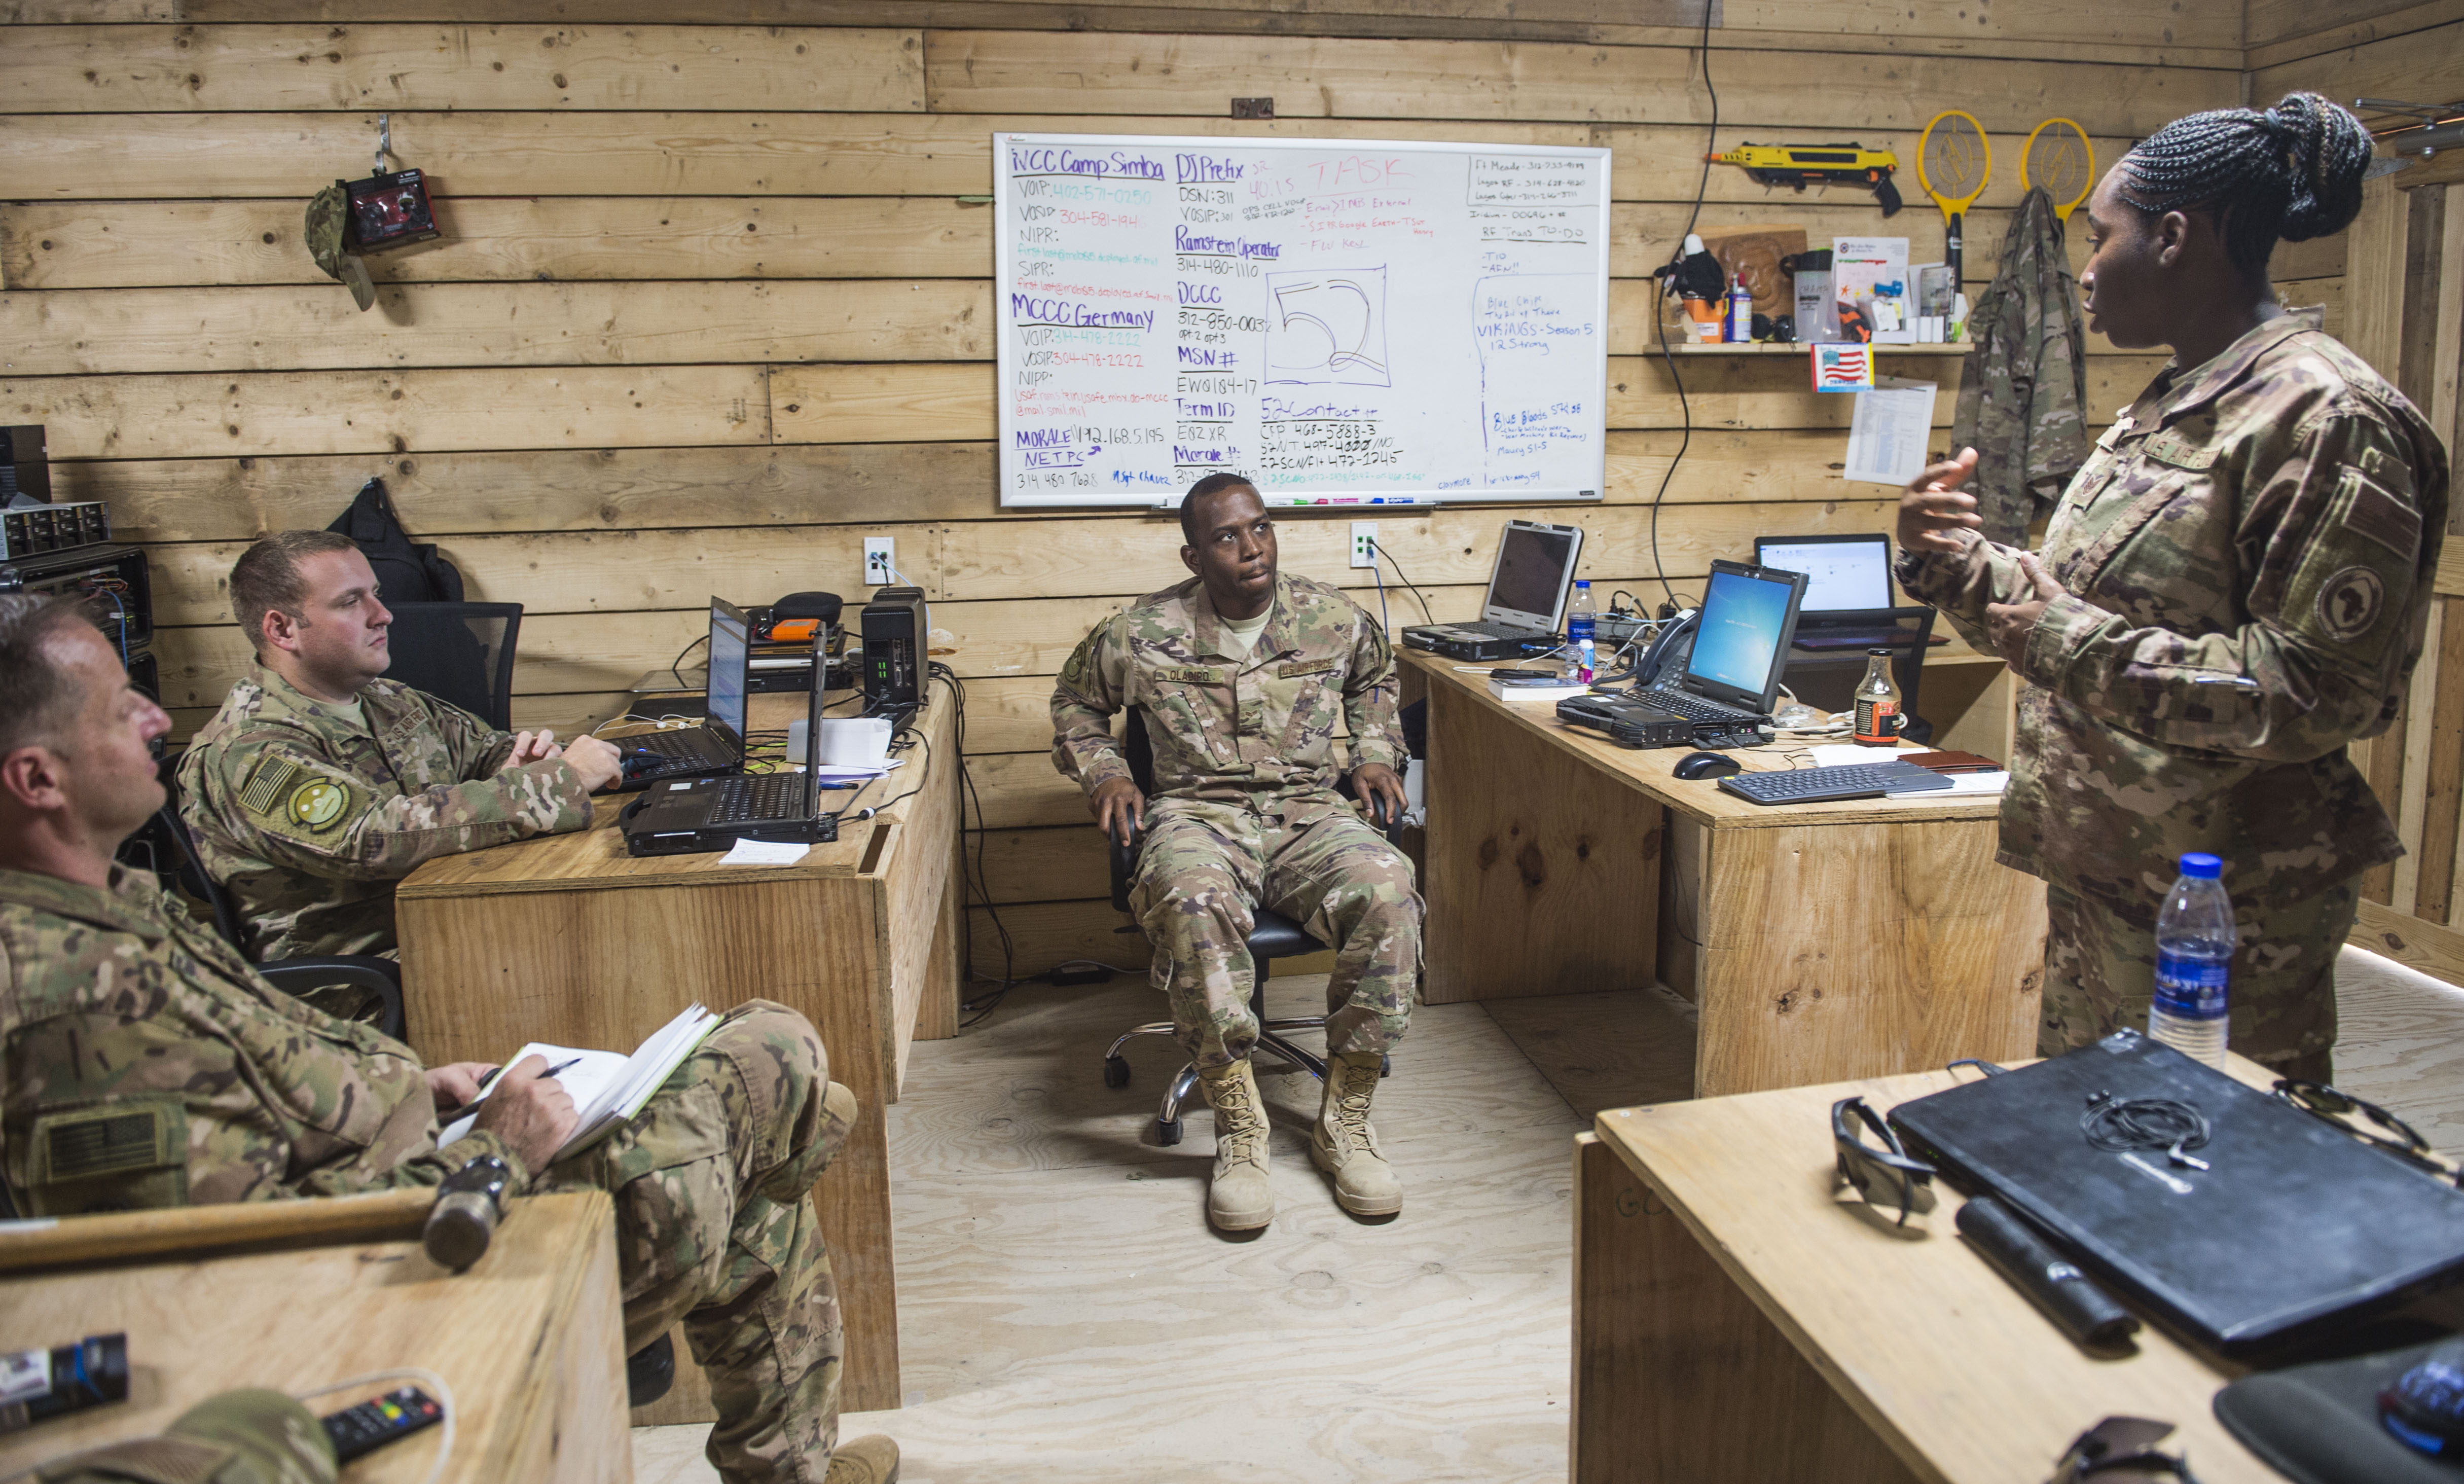 U.S. Army Maj. Robert T. Paul, far left, command inspector general, and U.S. Air Force Tech. Sgt. Starr Day, far right, assistant inspector general, talk with service members during a battlefield circulation site visit at Camp Simba in Manda Bay, Kenya, Feb. 24, 2018. While assigned to the Combined Joint Task Force - Horn of Africa Inspector General directorate, Paul and Day provide support to the service members, Department of Defense civilians, and local national and third-country national contractors who work on the camp. Though many of the members at the camp don't fall under CJTF-HOA's command, many of the concerns that affect the CJTF-HOA personnel at the camp also affect them and vice versa. (U.S. Air Force photo by Staff Sgt. Timothy Moore)